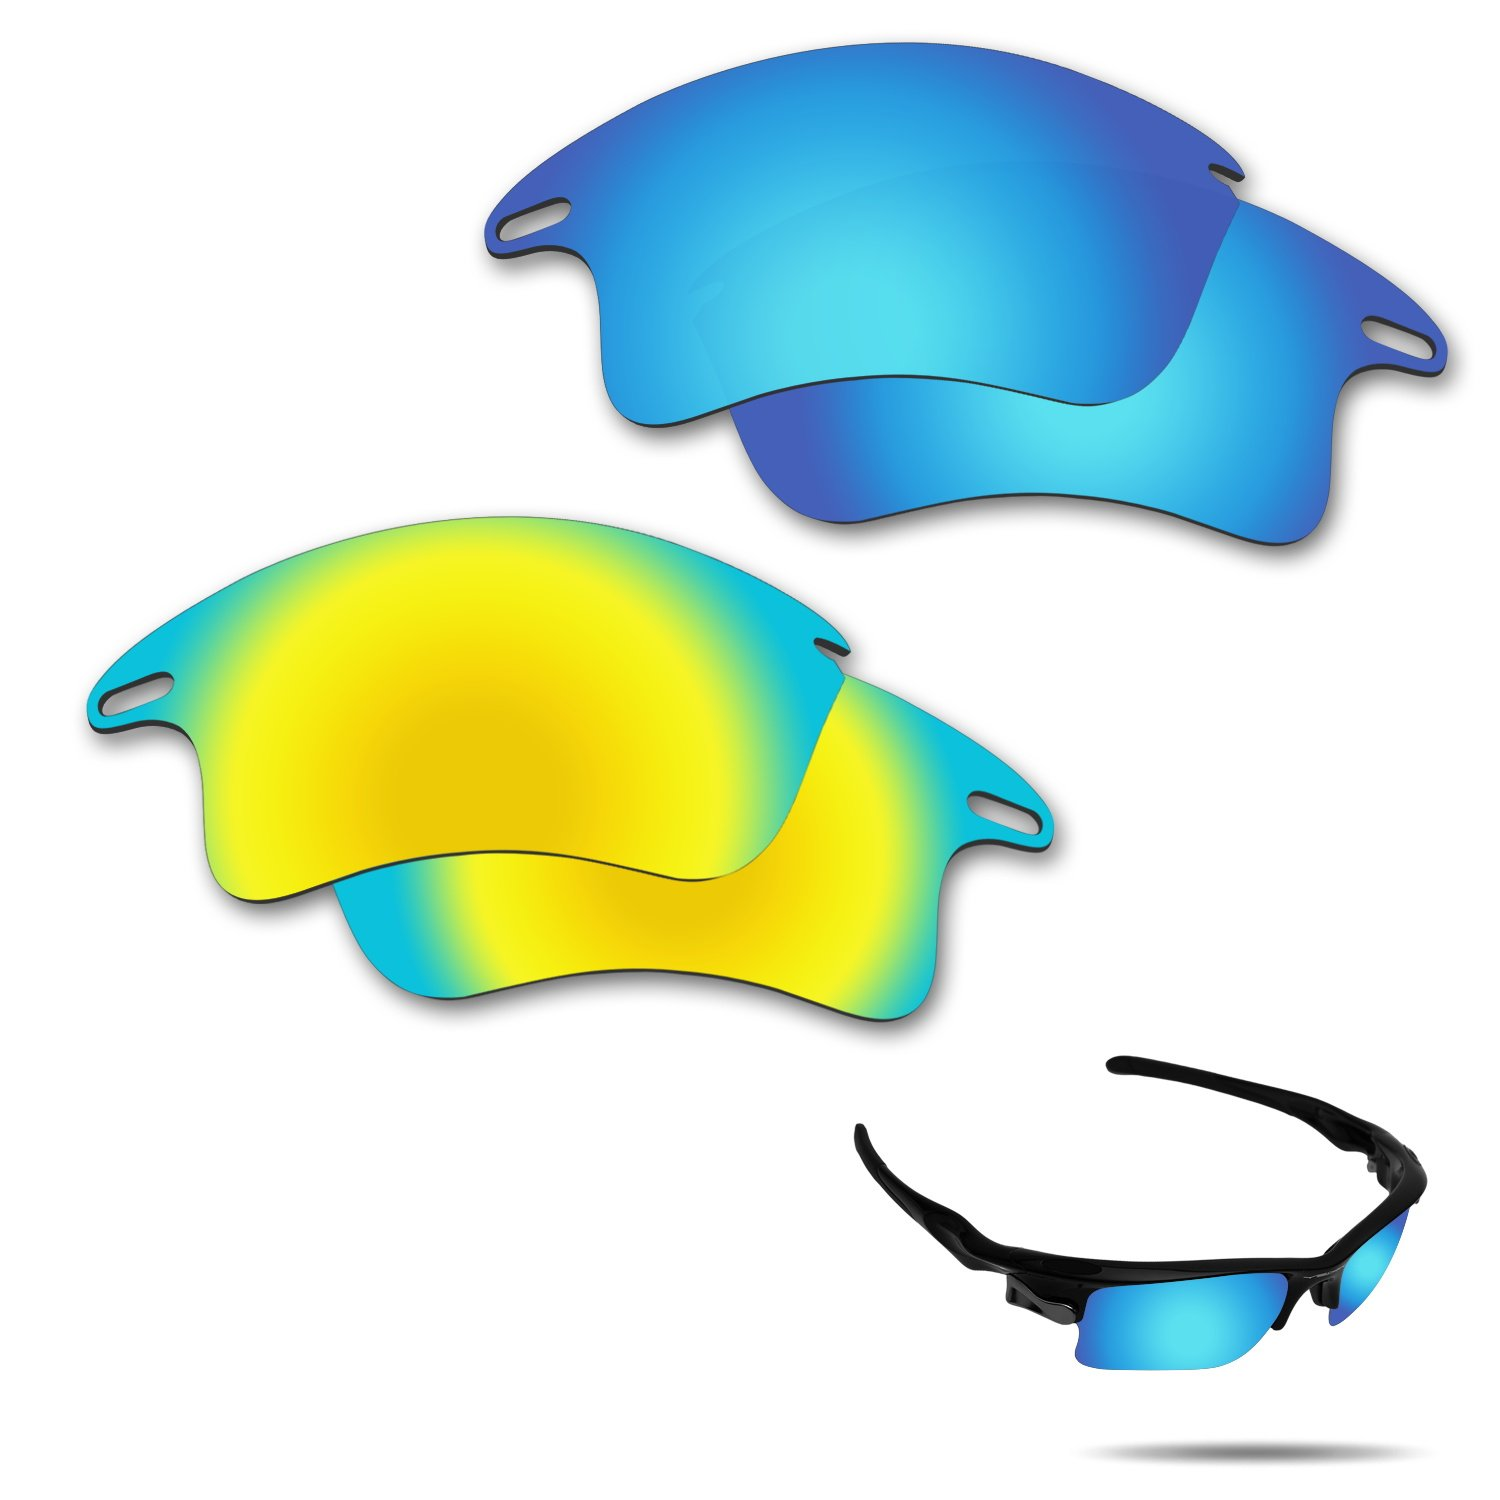 Fiskr Anti-Saltwater Polarized Replacement Lenses for Oakley Fast Jacket XL Sunglasses 2 Pairs Packed (Ice Blue & 24K Gold)